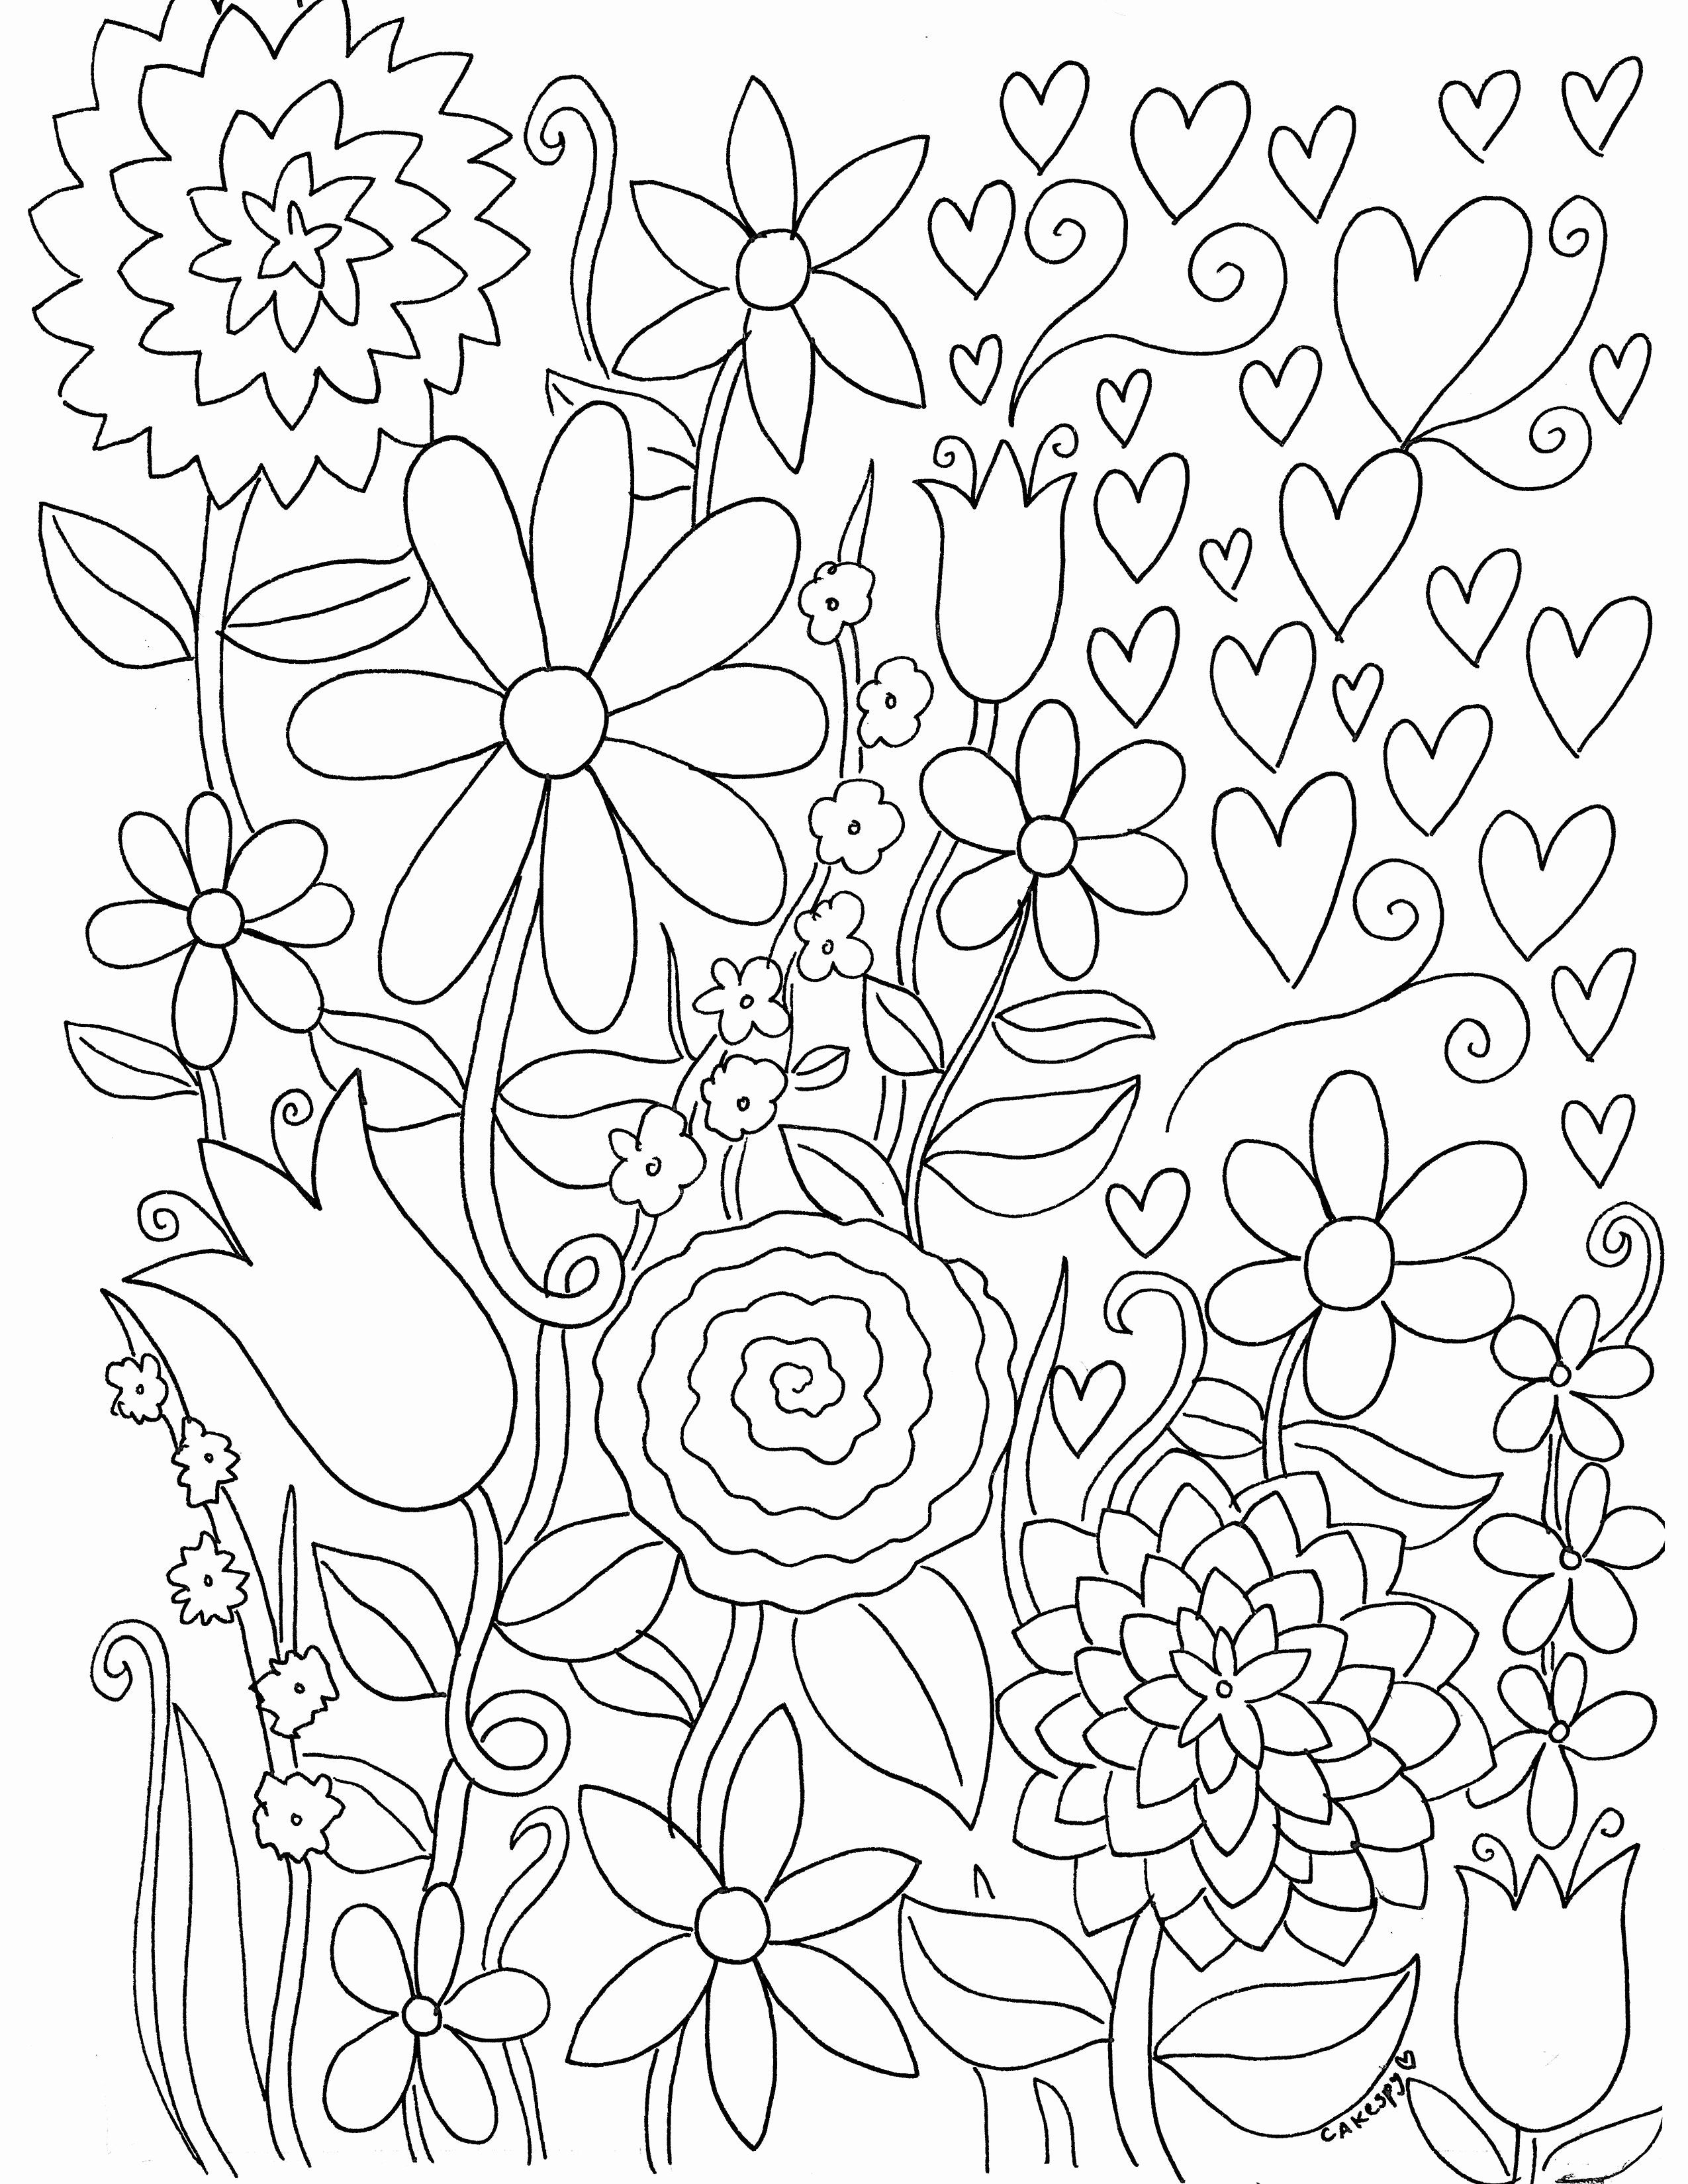 Printable Color By Number For Adults Unique Free Paint By Numbers For Adults Downloadabl Coloring Book Download Designs Coloring Books Christmas Coloring Books